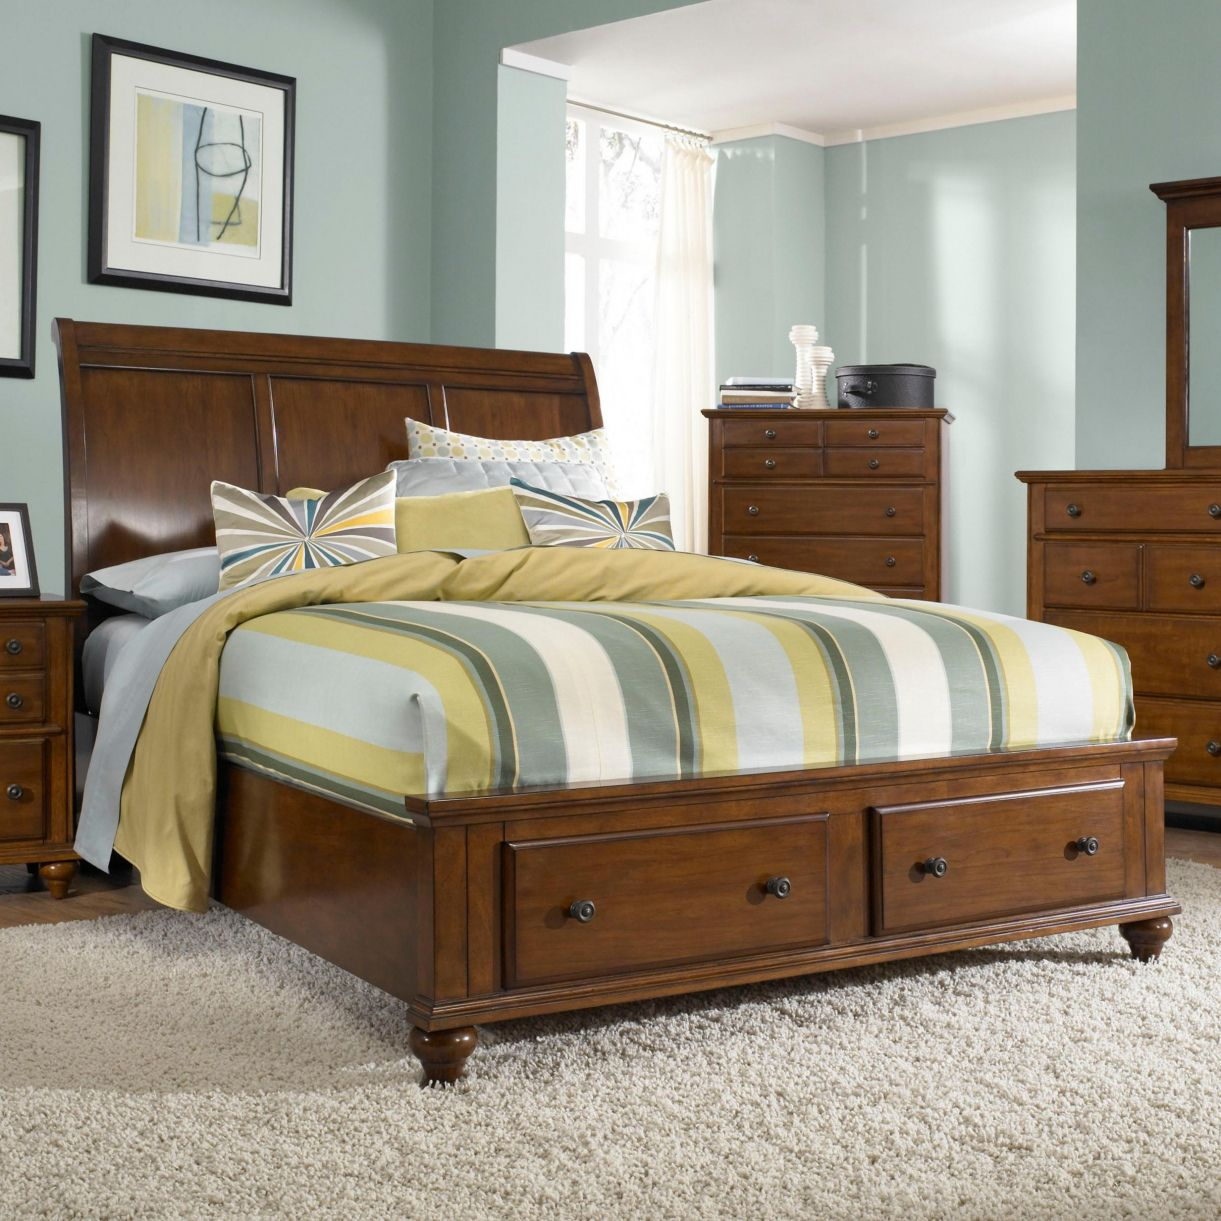 raymour flanigan bedroom furniture cool storage furniture check